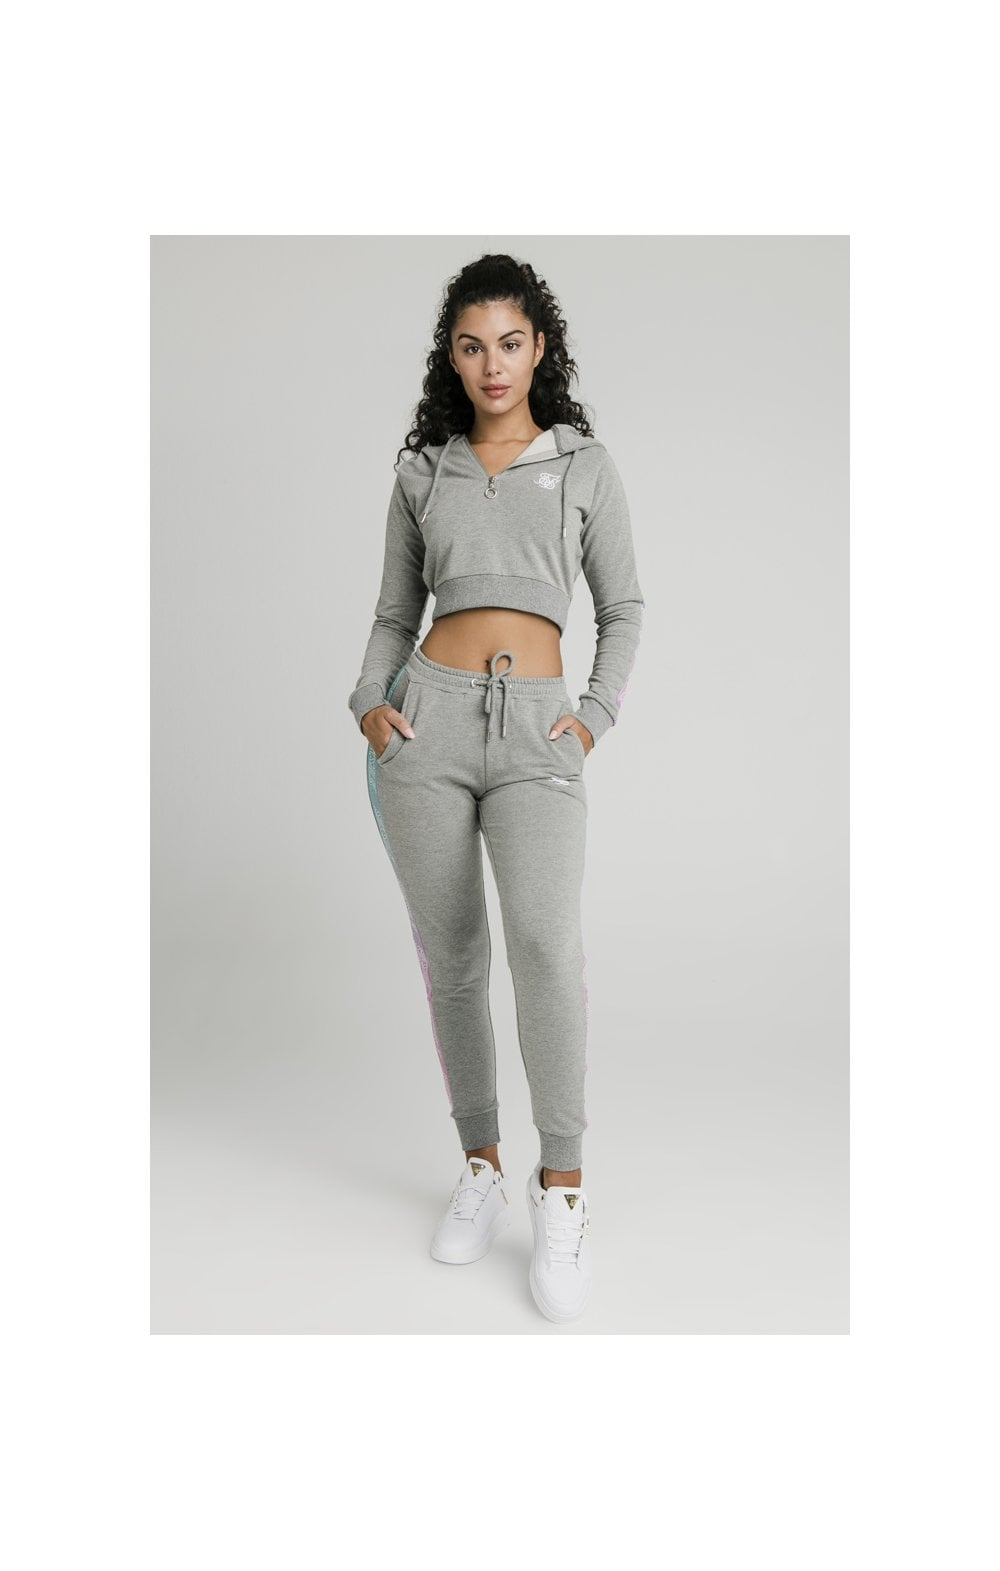 Load image into Gallery viewer, SikSilk Fade Runner Track Top - Grey Marl (3)